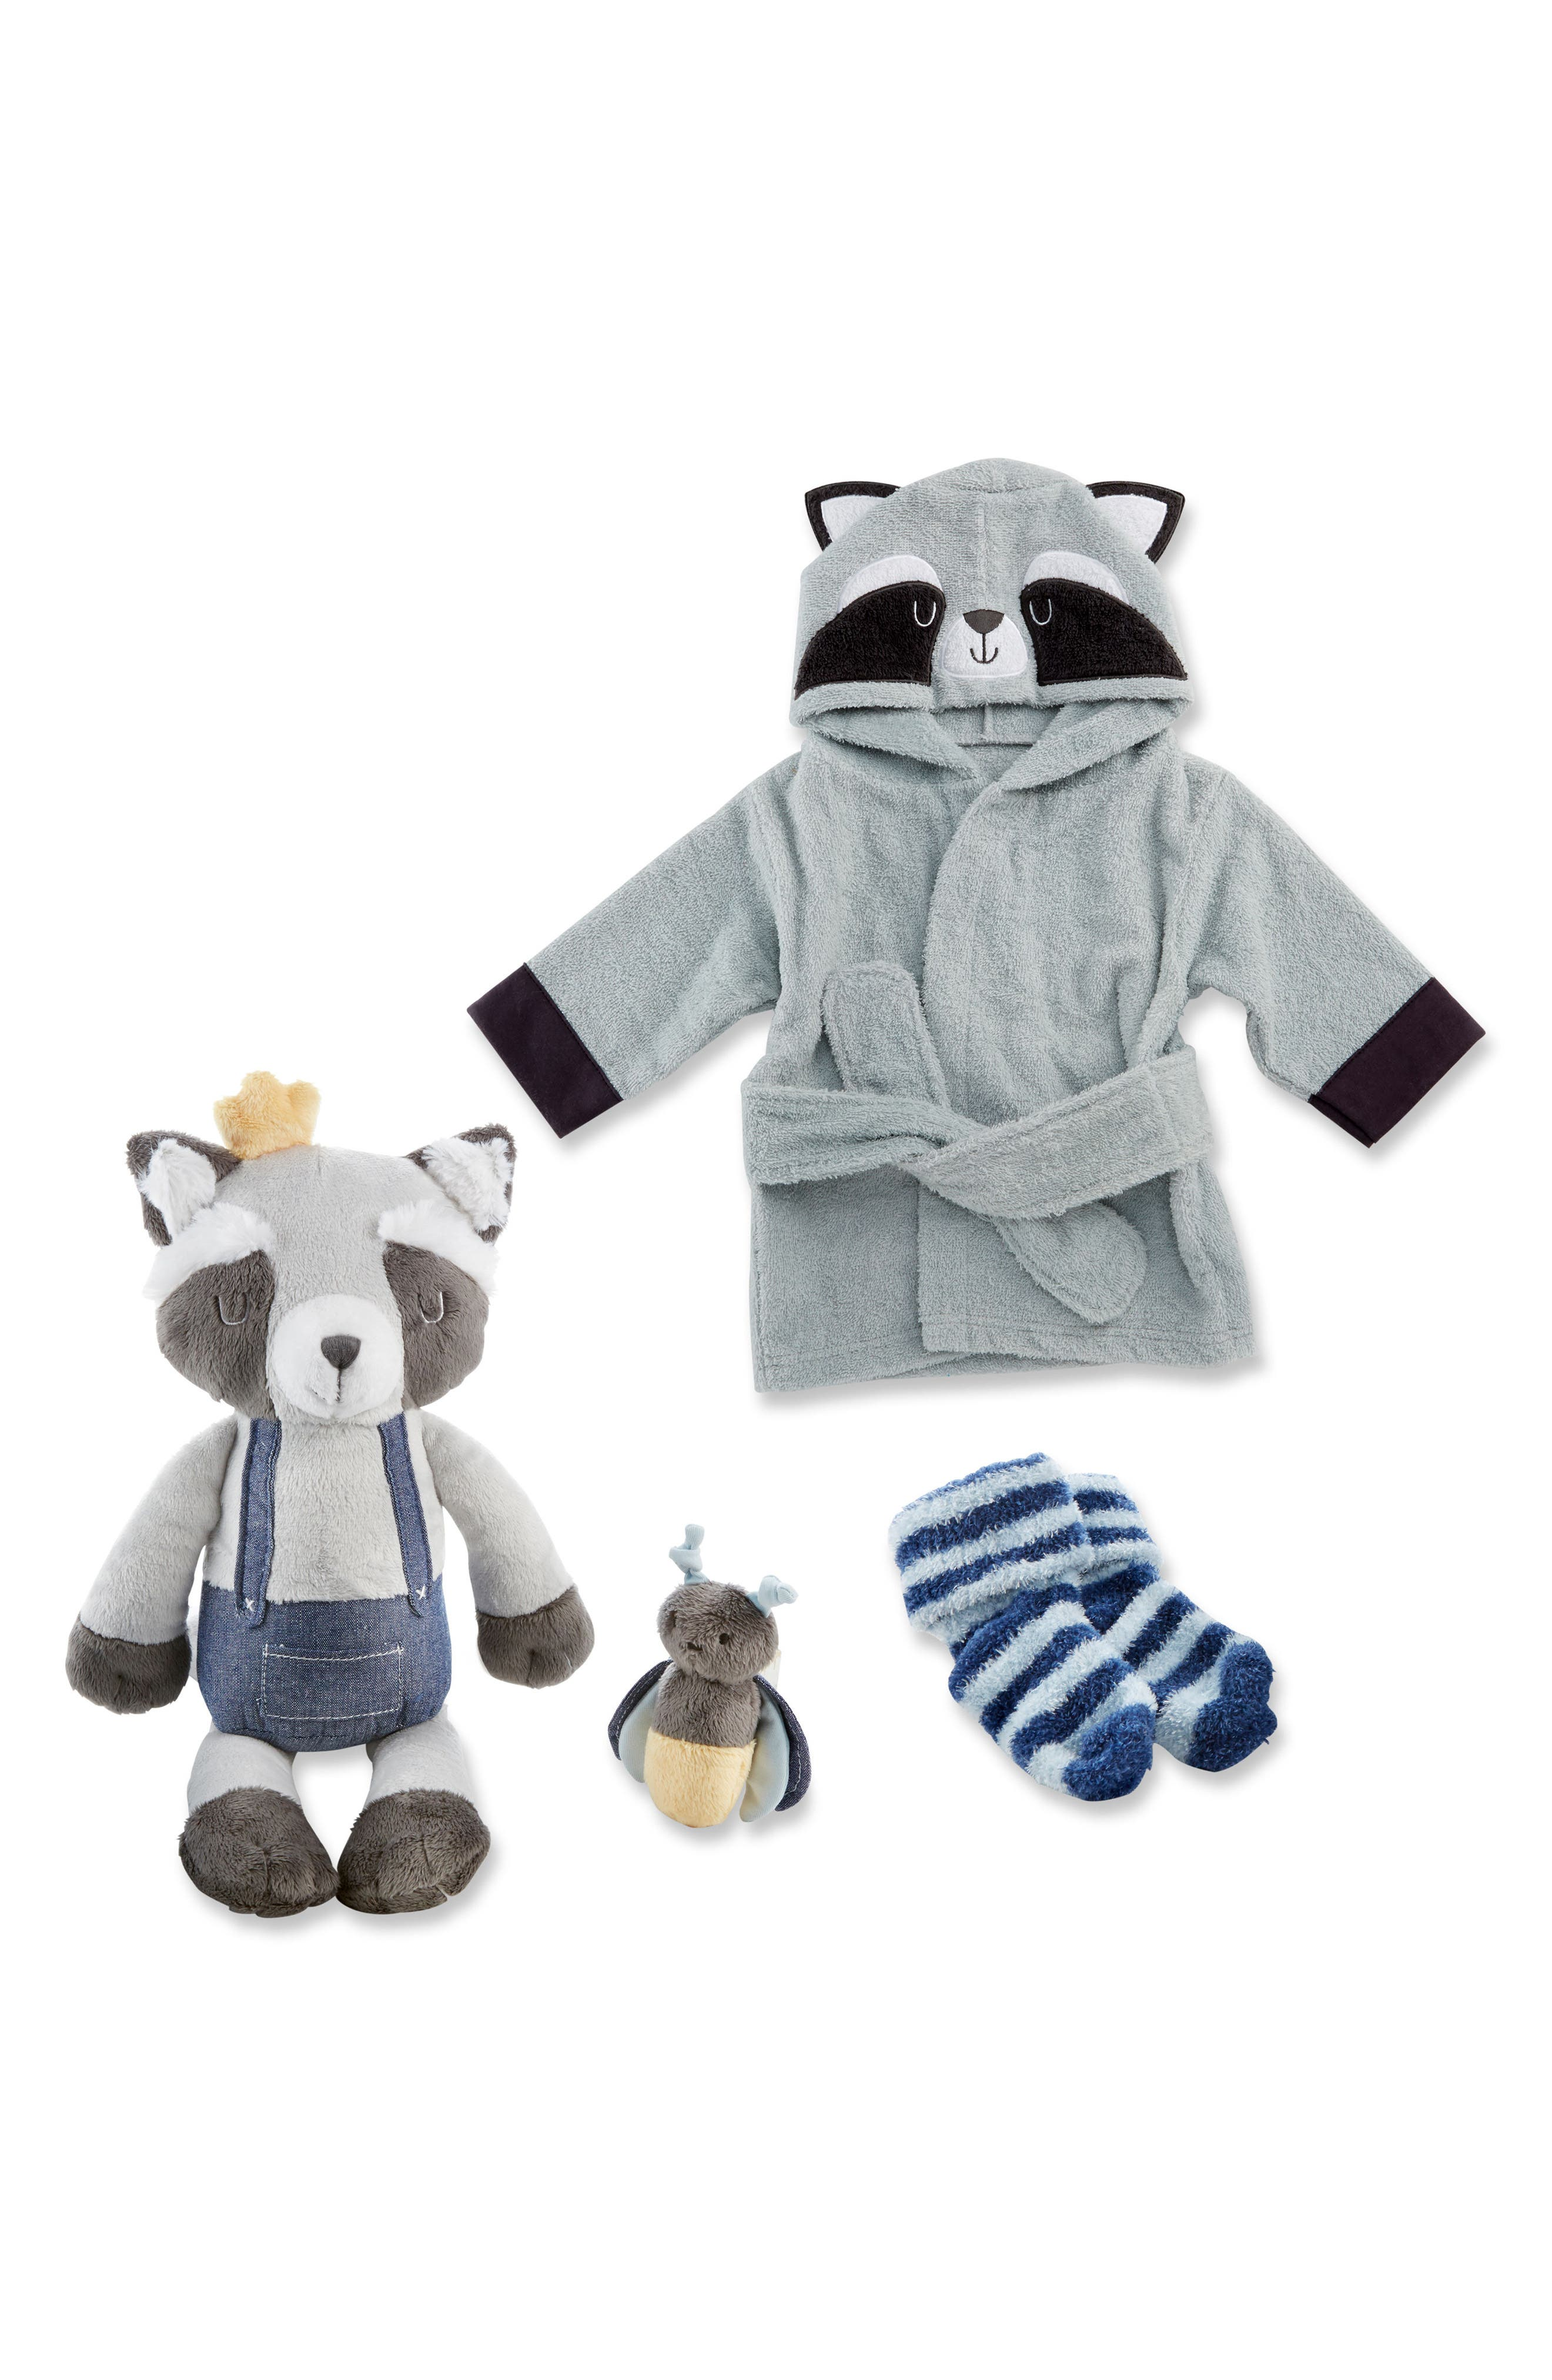 Forest Friends Raccoon Plush Robe, Fuzzy Socks, Stuffed Animal & Rattle Set,                             Main thumbnail 1, color,                             060